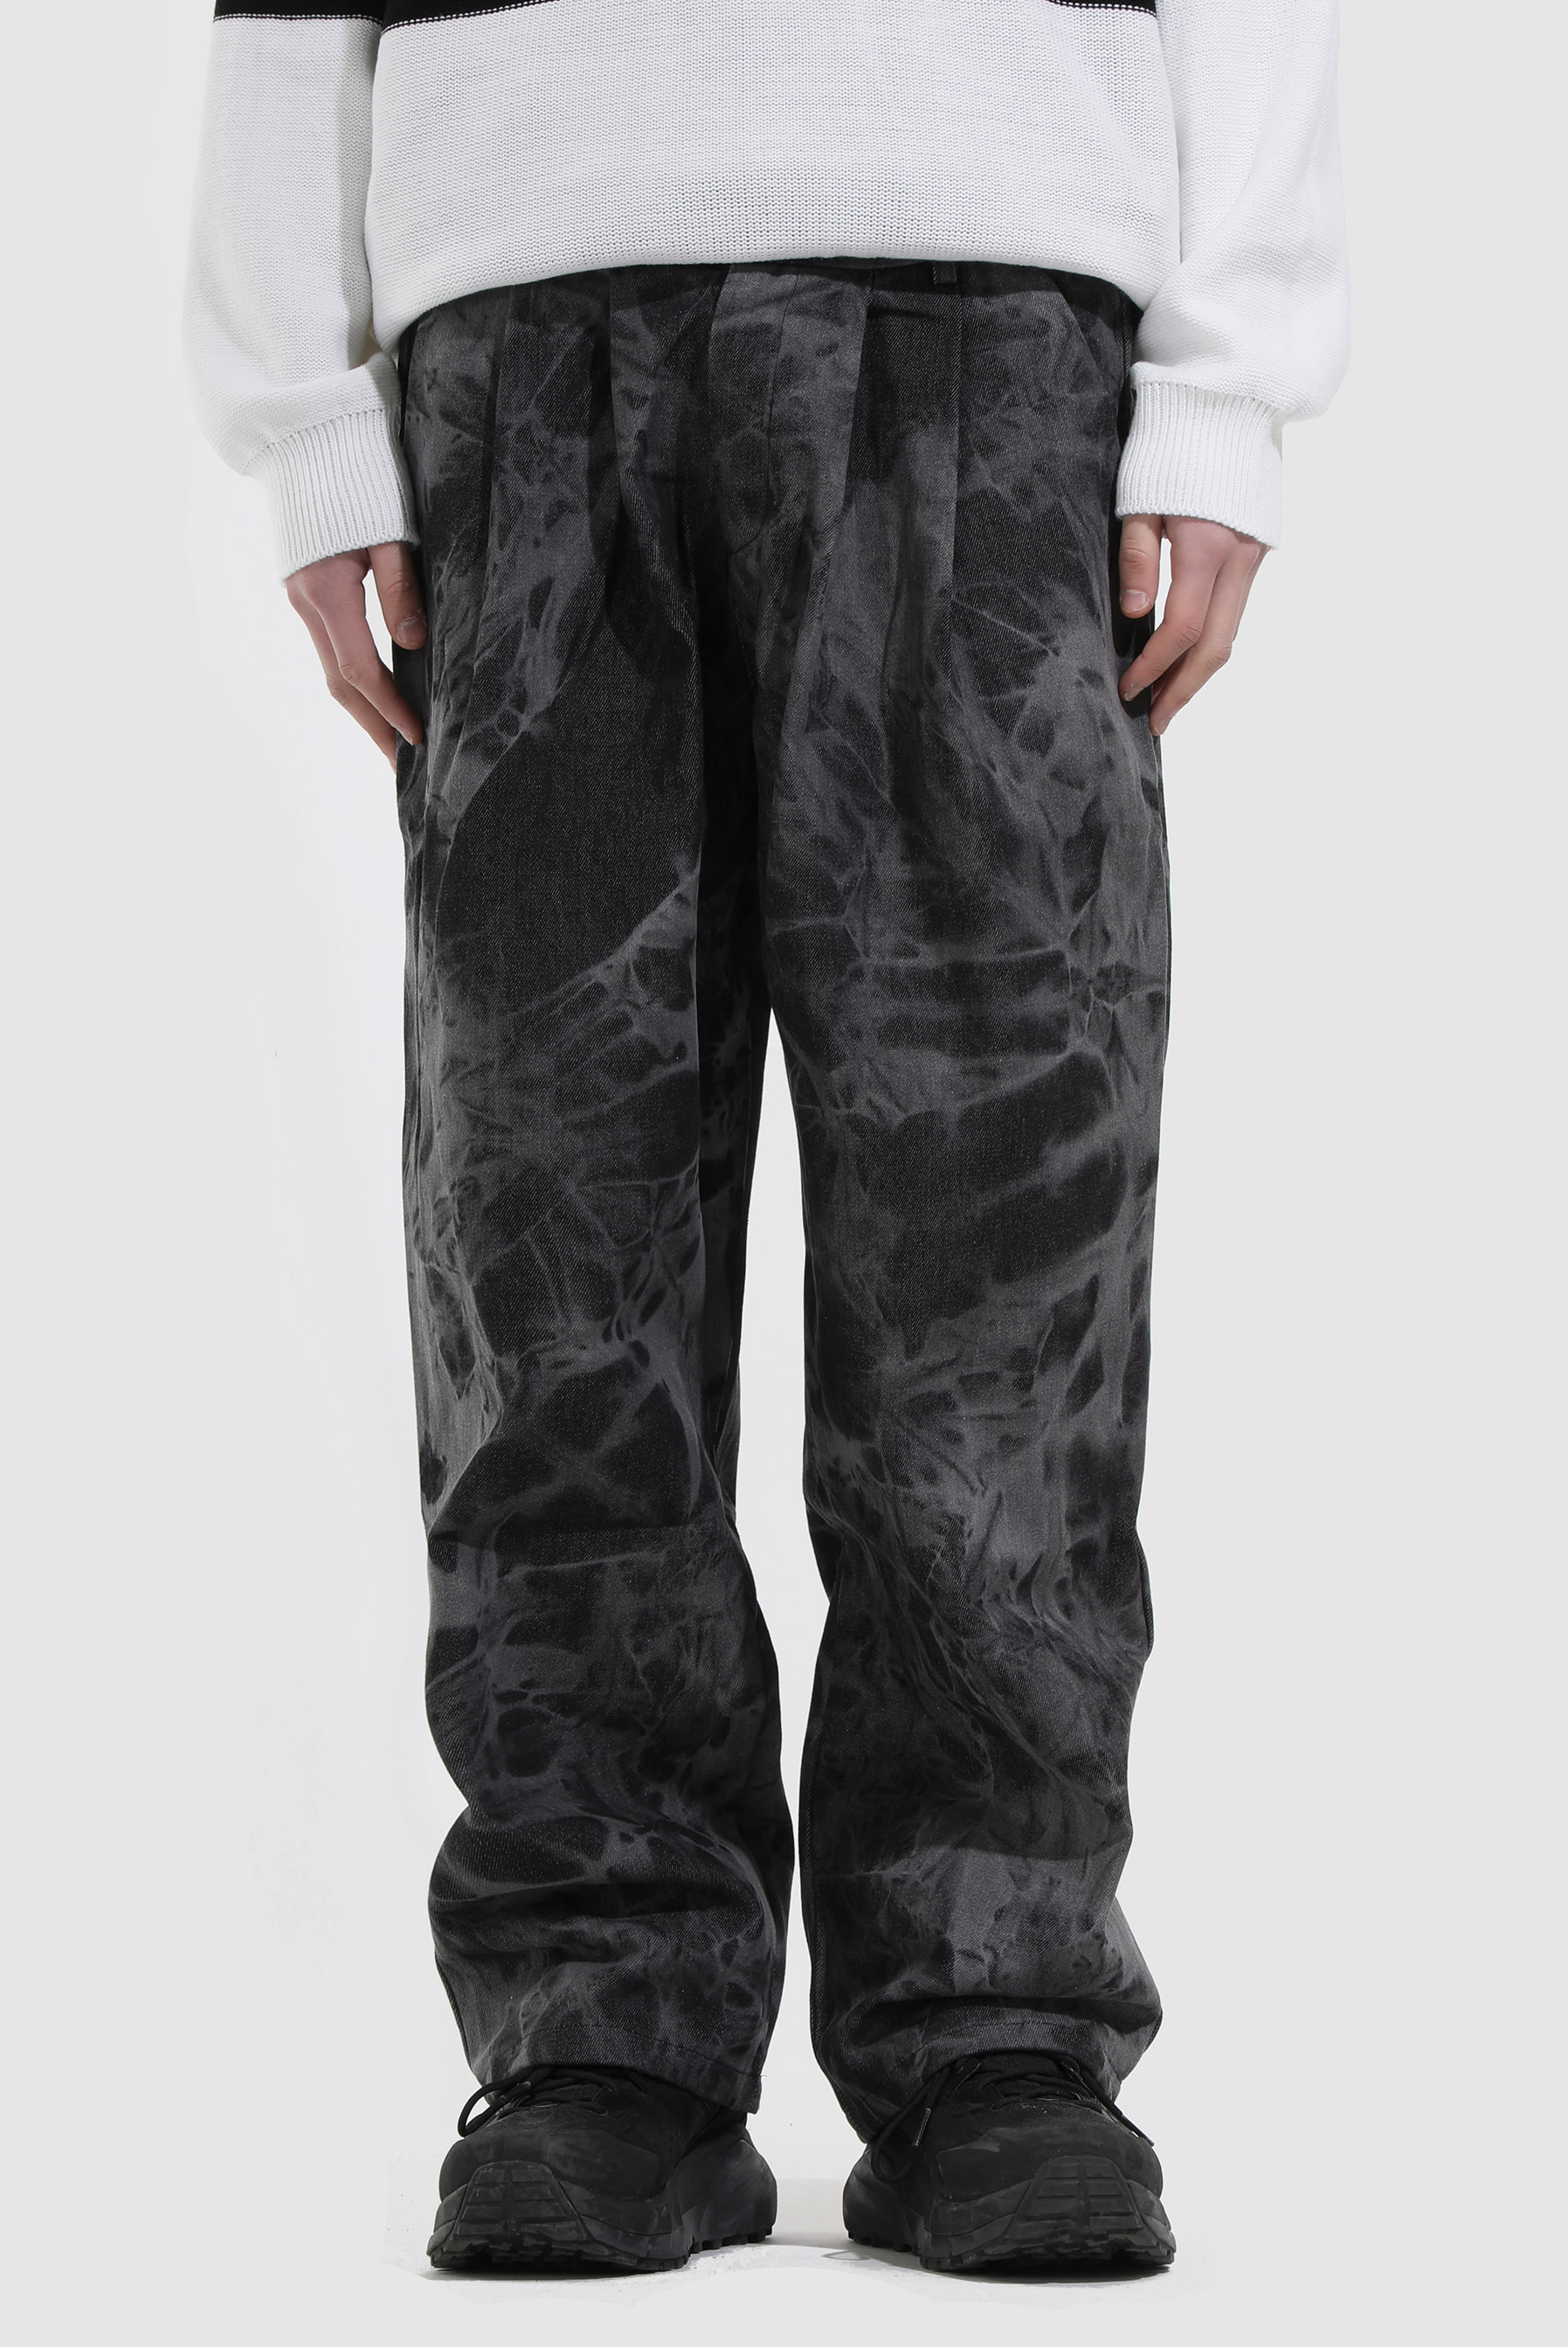 Tye-Dye Crack Wide_Pant